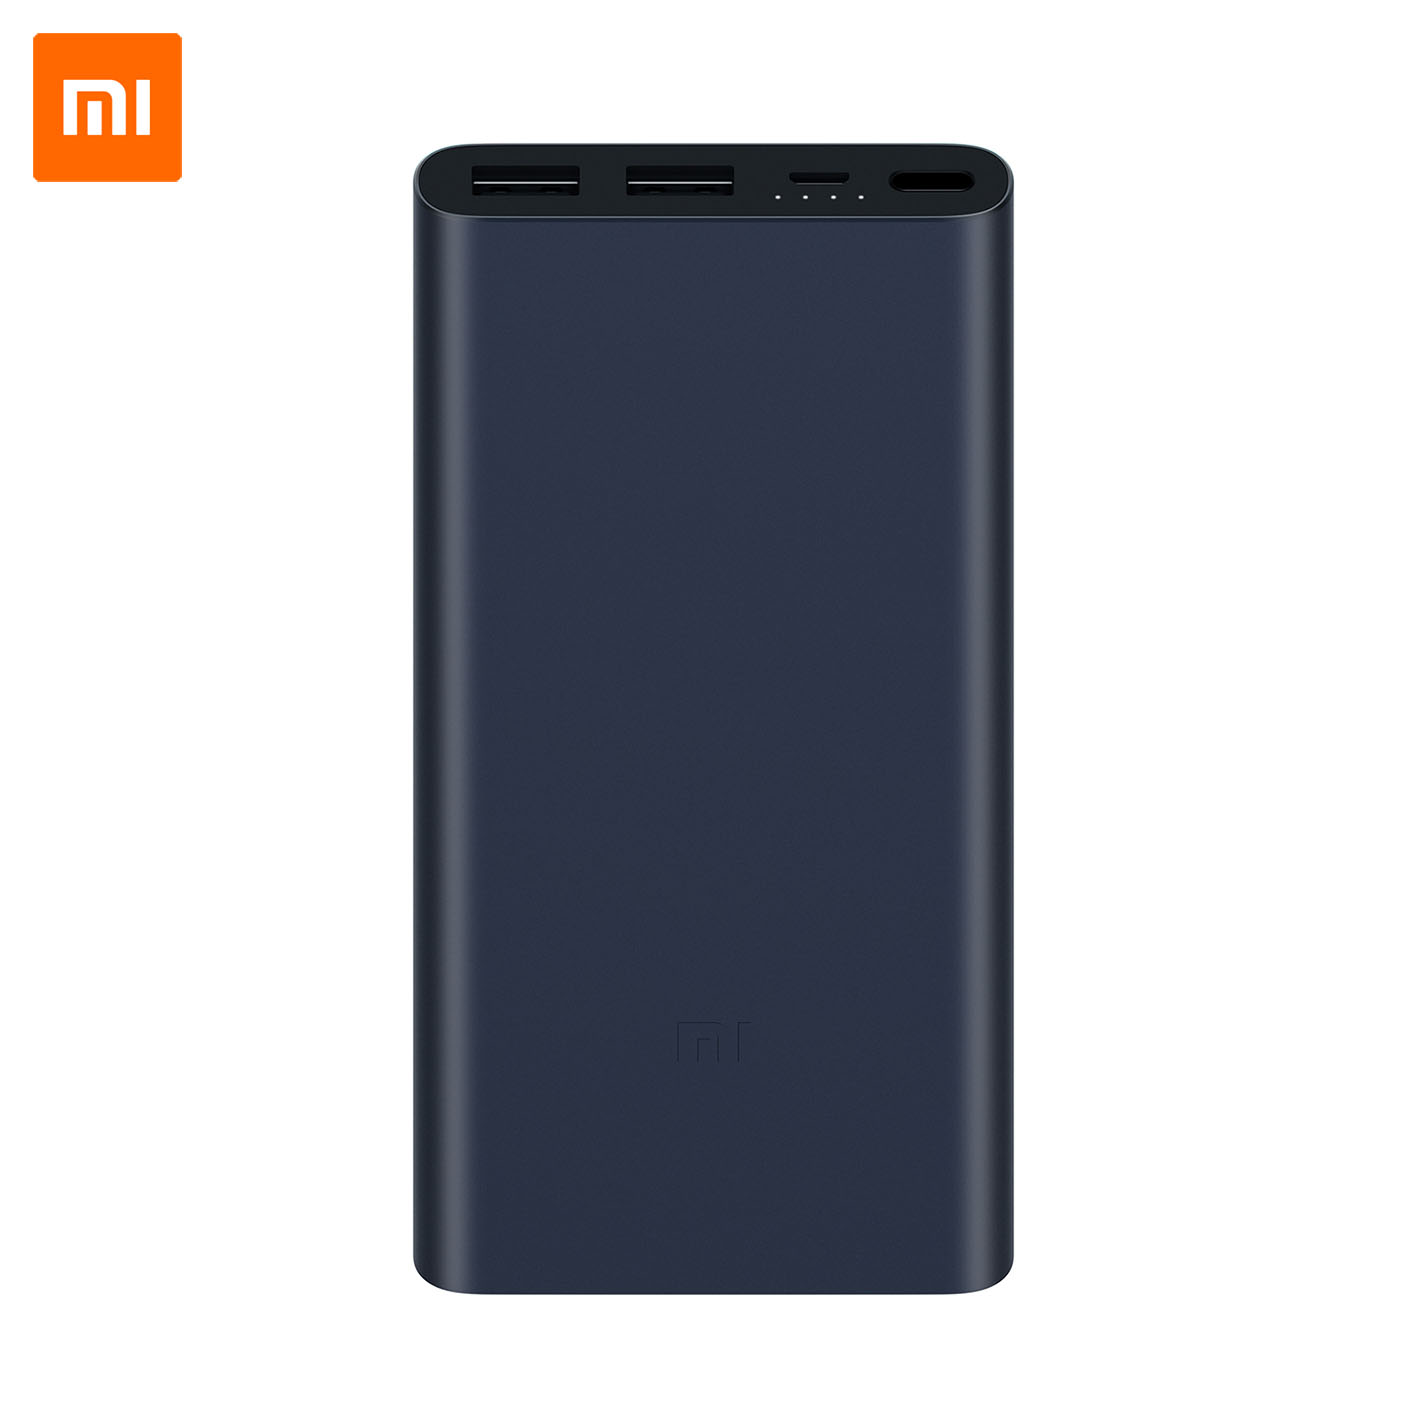 Xiaomi Mi Power Bank 2S 10000 mAh, QuickCharge 2.0  - FEKETE